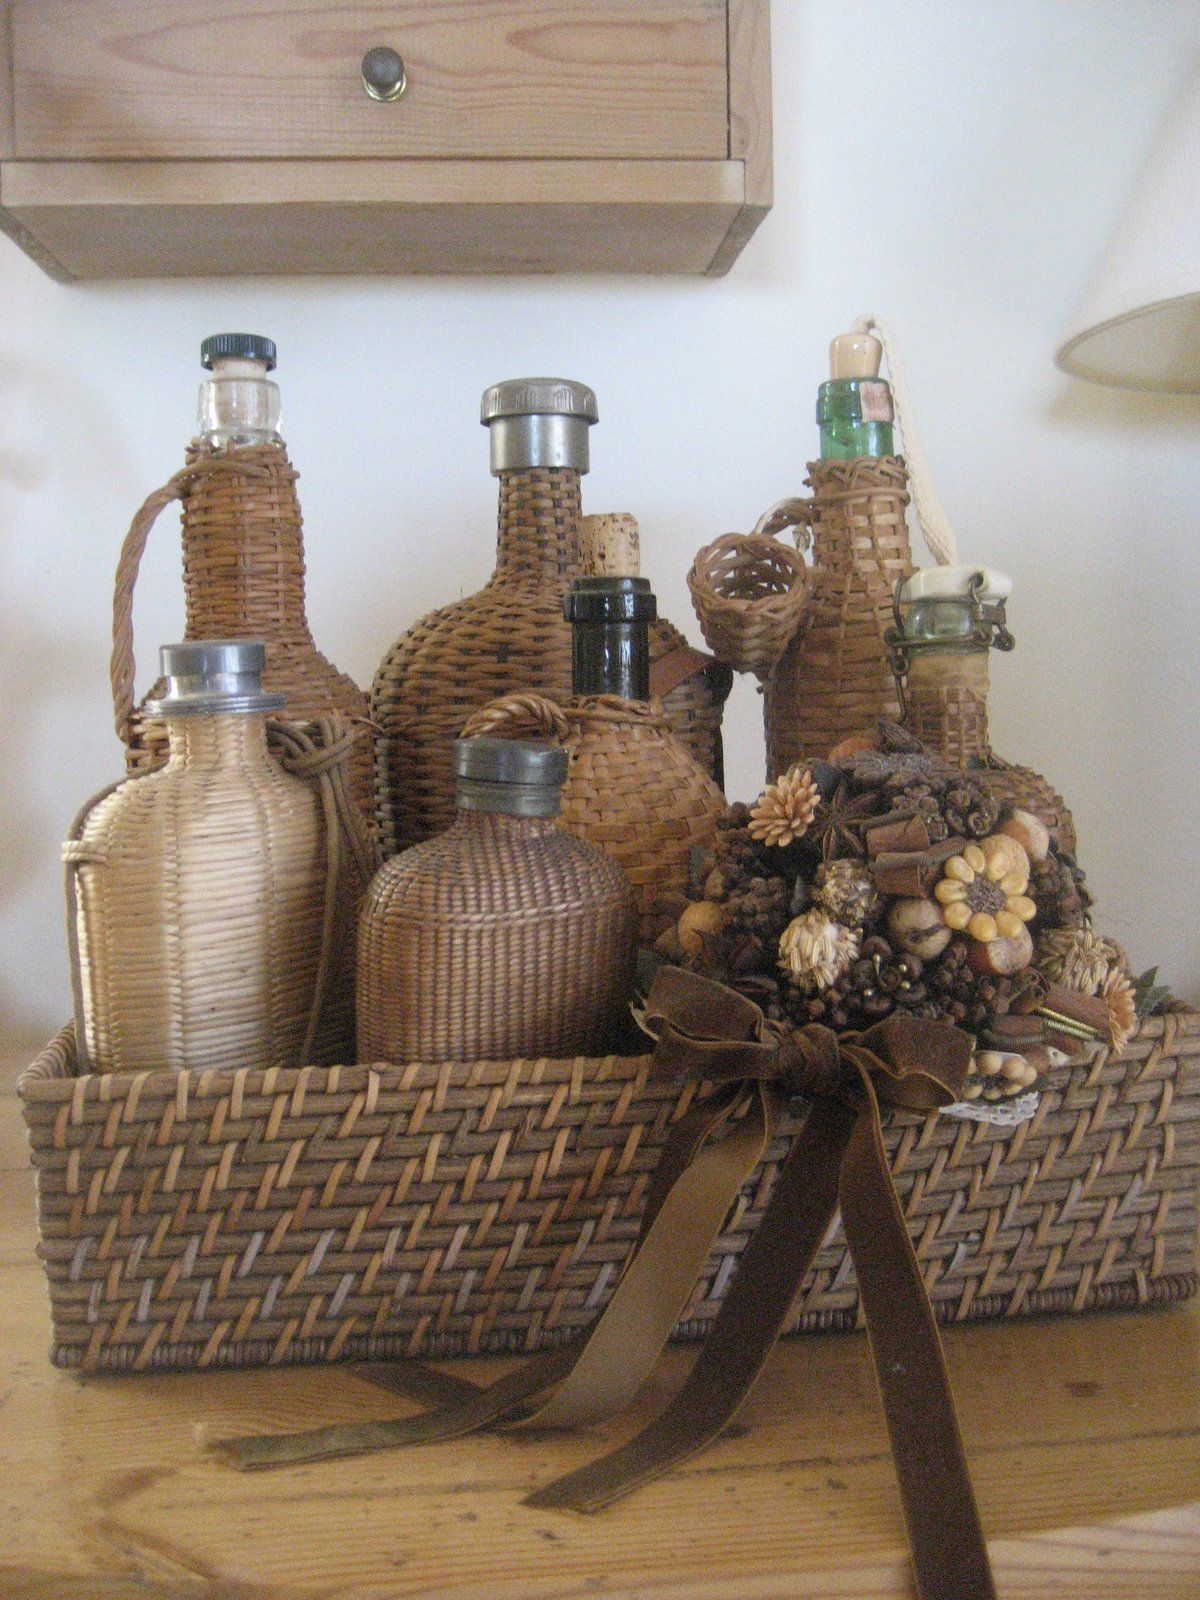 52 FLEA: Baskets and Wicker Covered Bottles